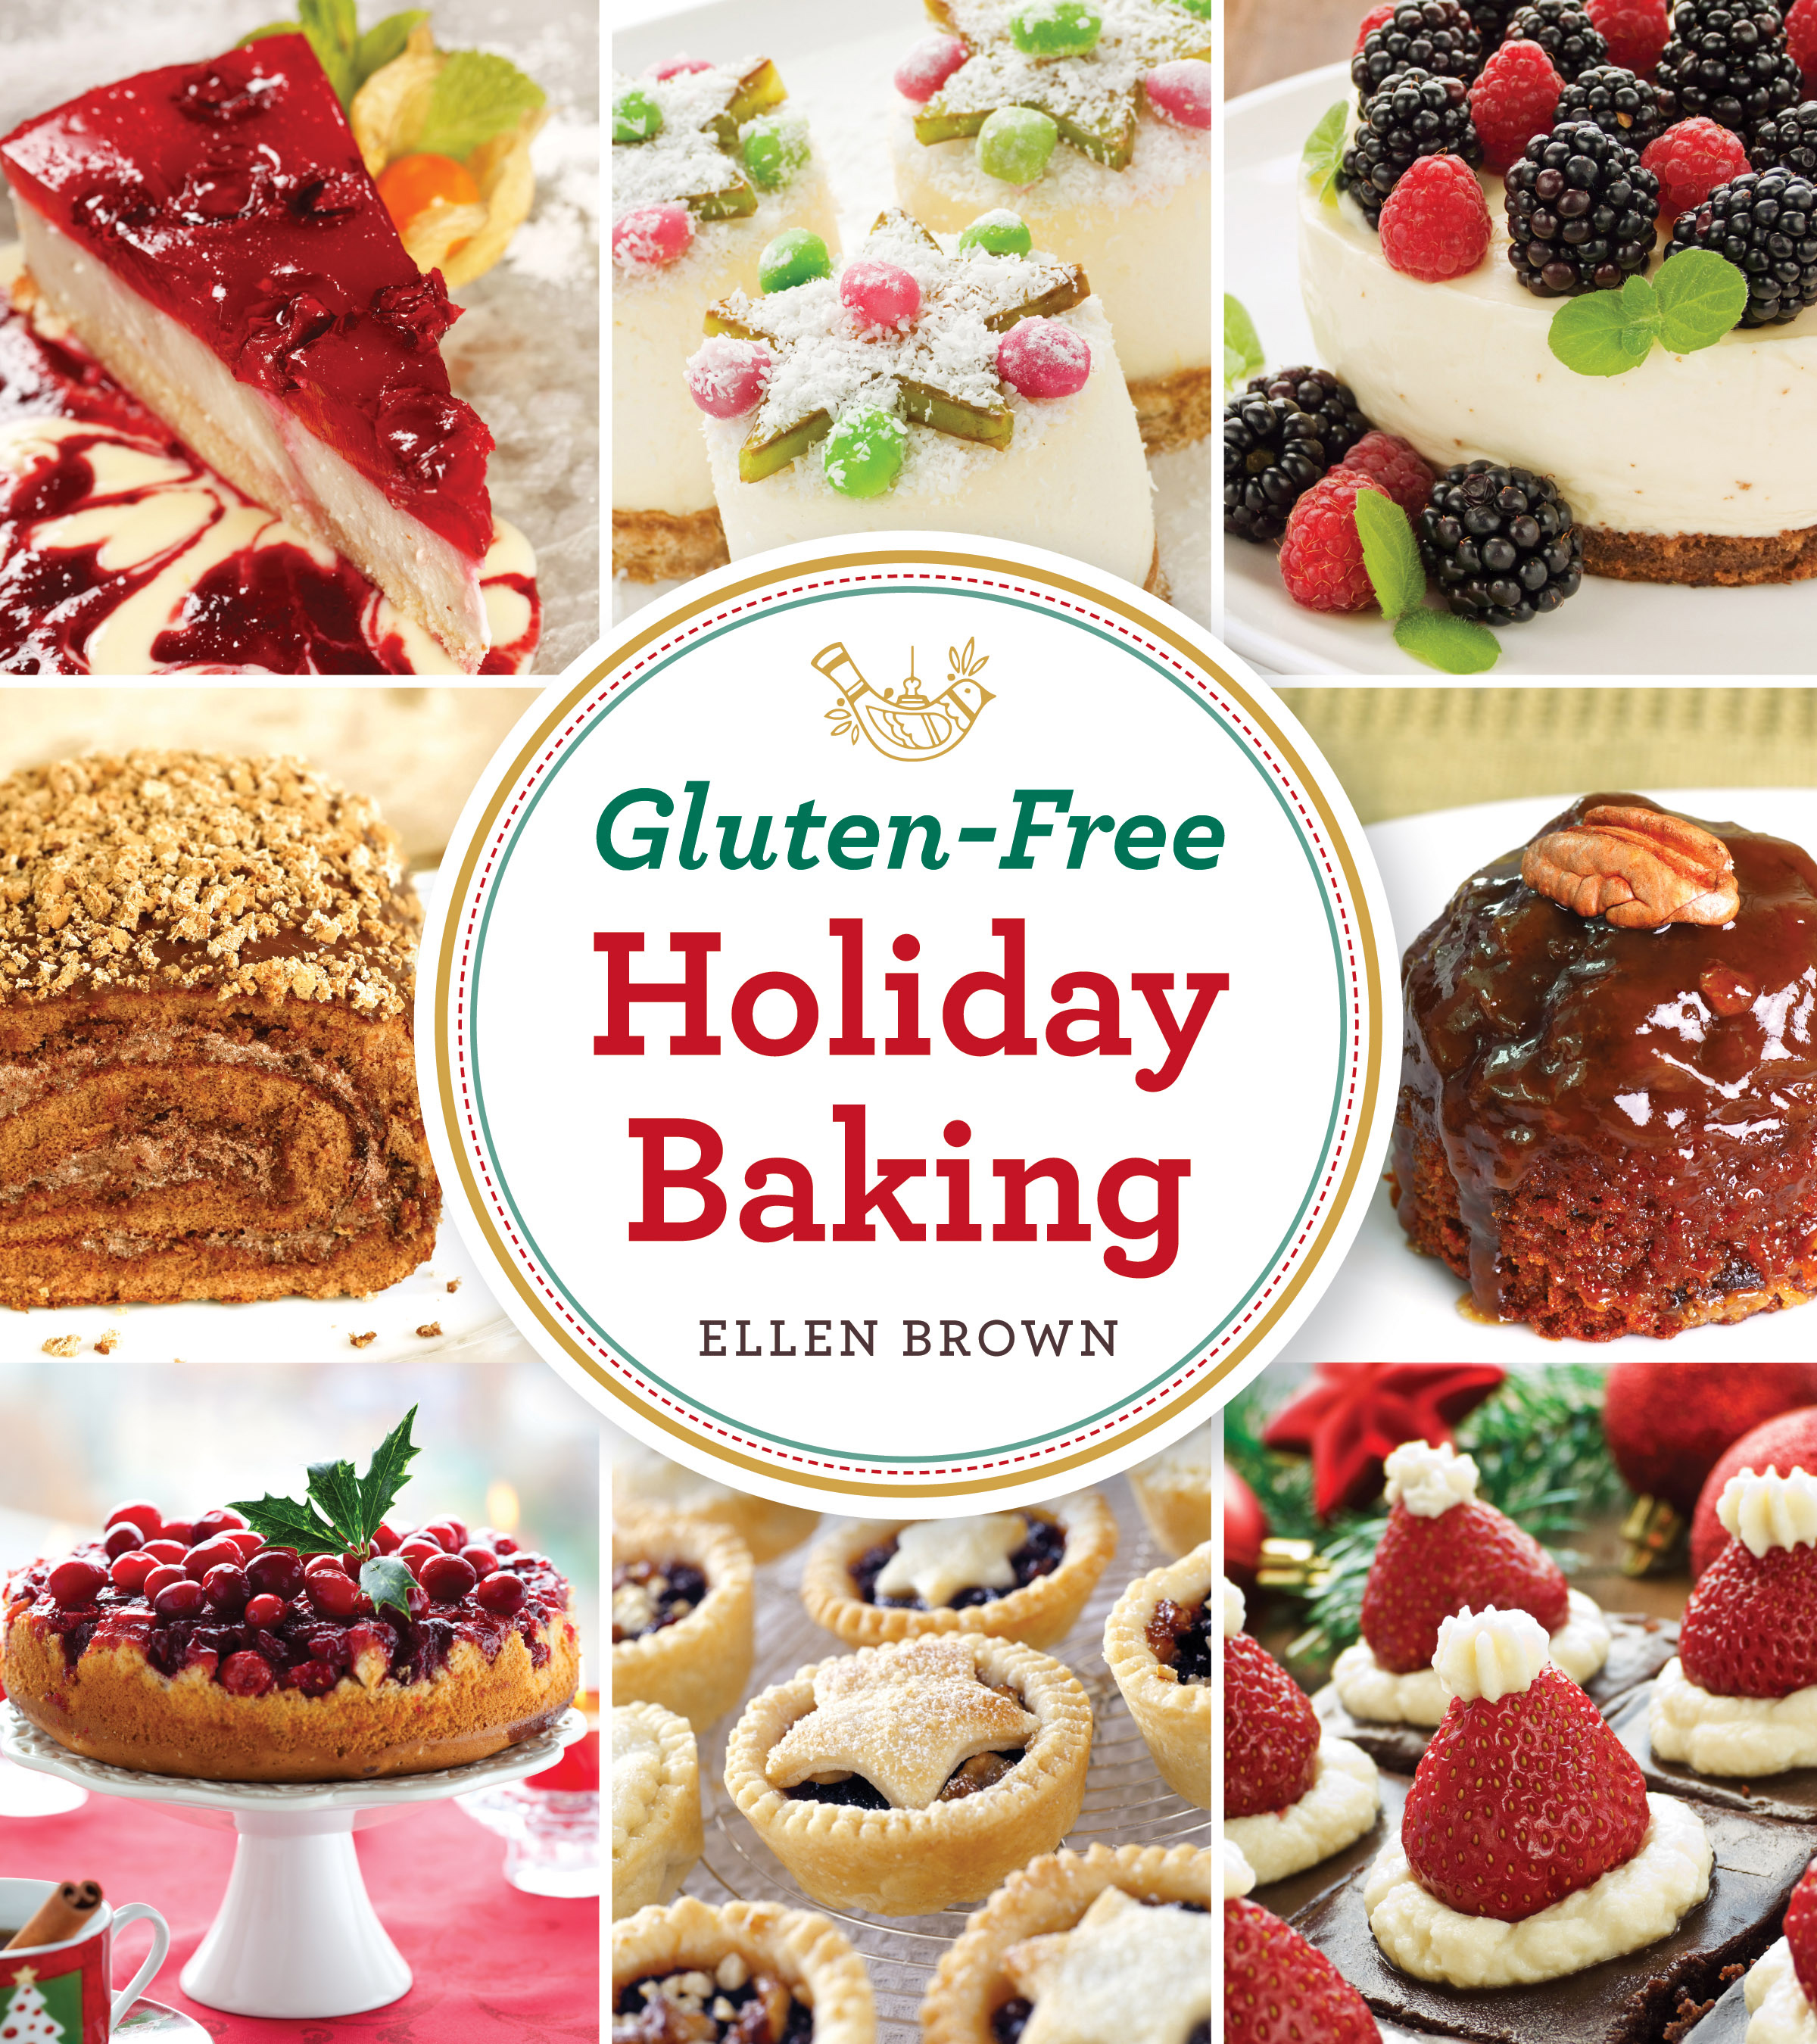 Gluten-free-holiday-baking-9781604332872_hr